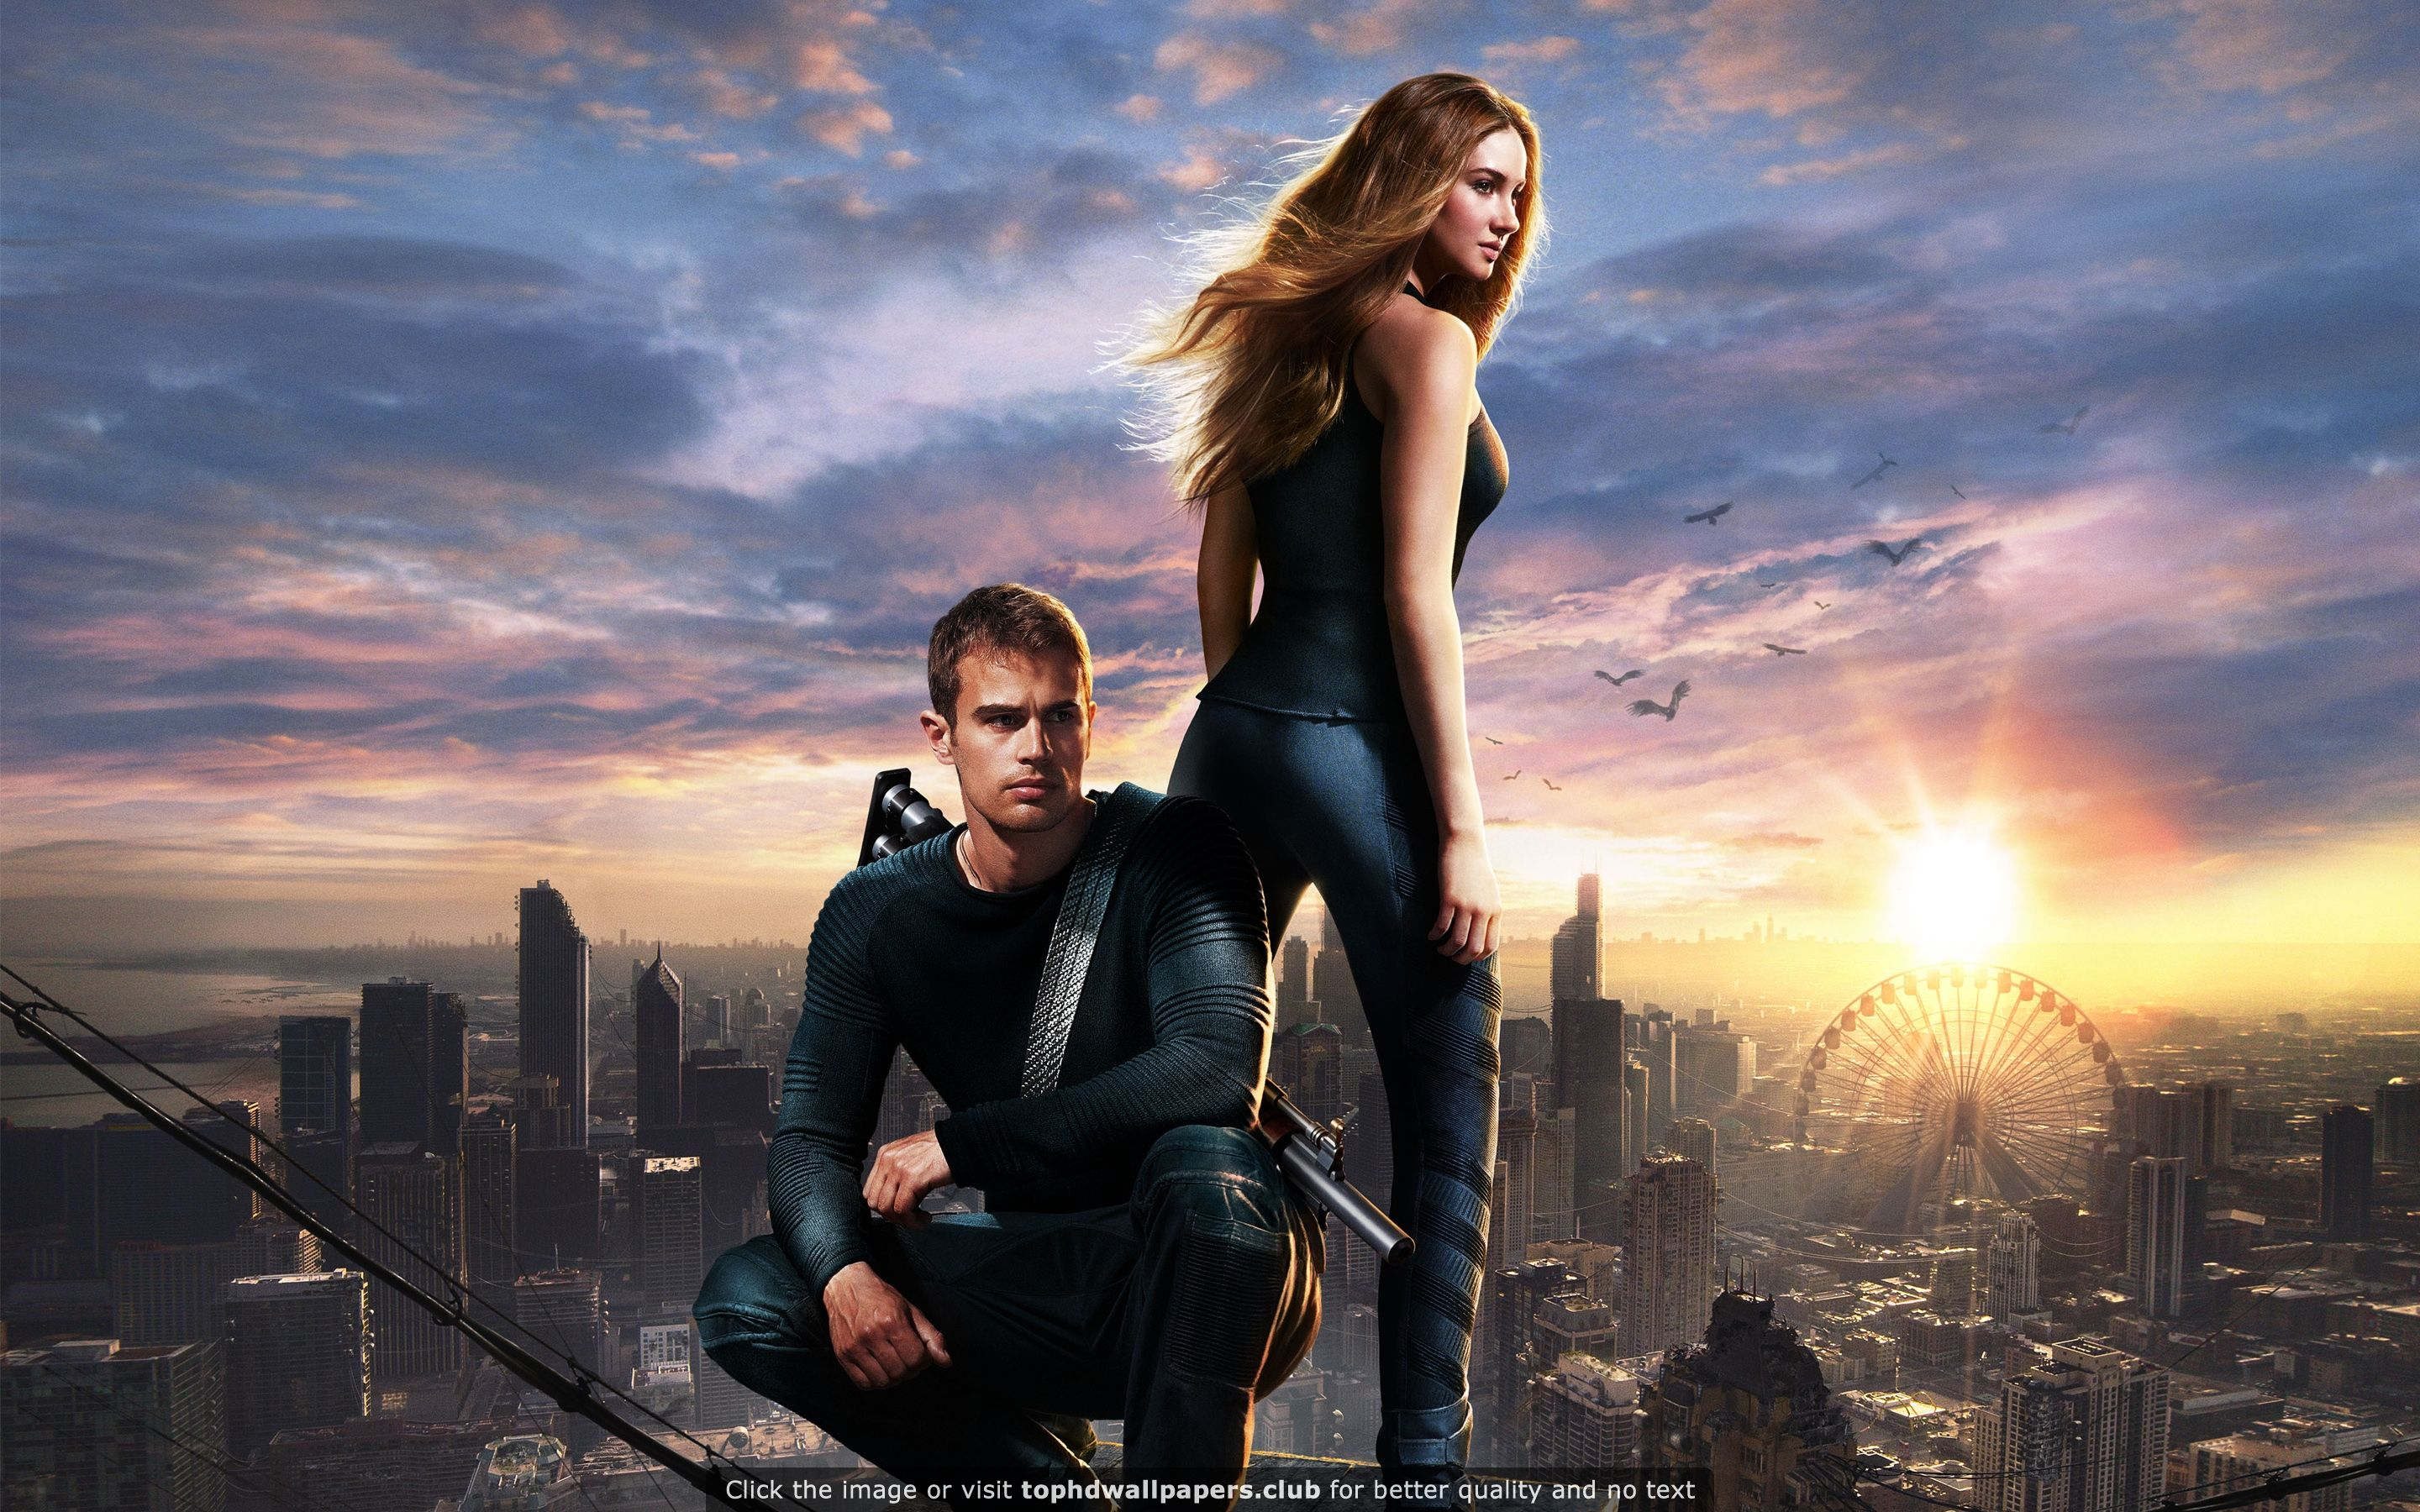 divergent movie hd wallpaper for your pc, mac or mobile device